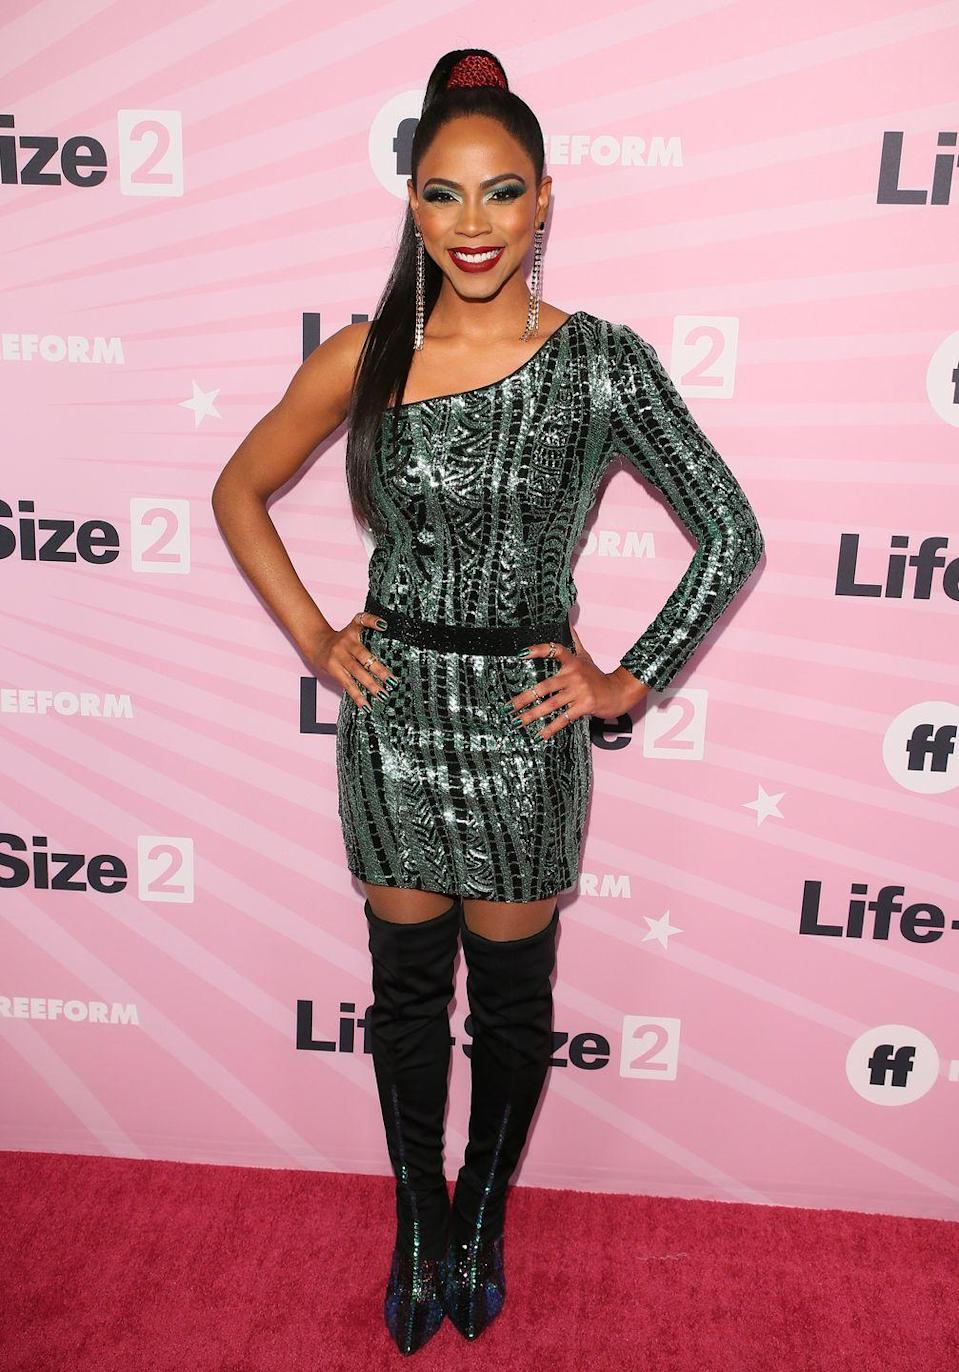 <p>Shanica Knowles (who sadly, before you ask, is <em>not</em> related to those famous singing sisters) is still working in TV. In 2018, she starred in Tyra Banks' <em>Life-Size</em> 2.</p>